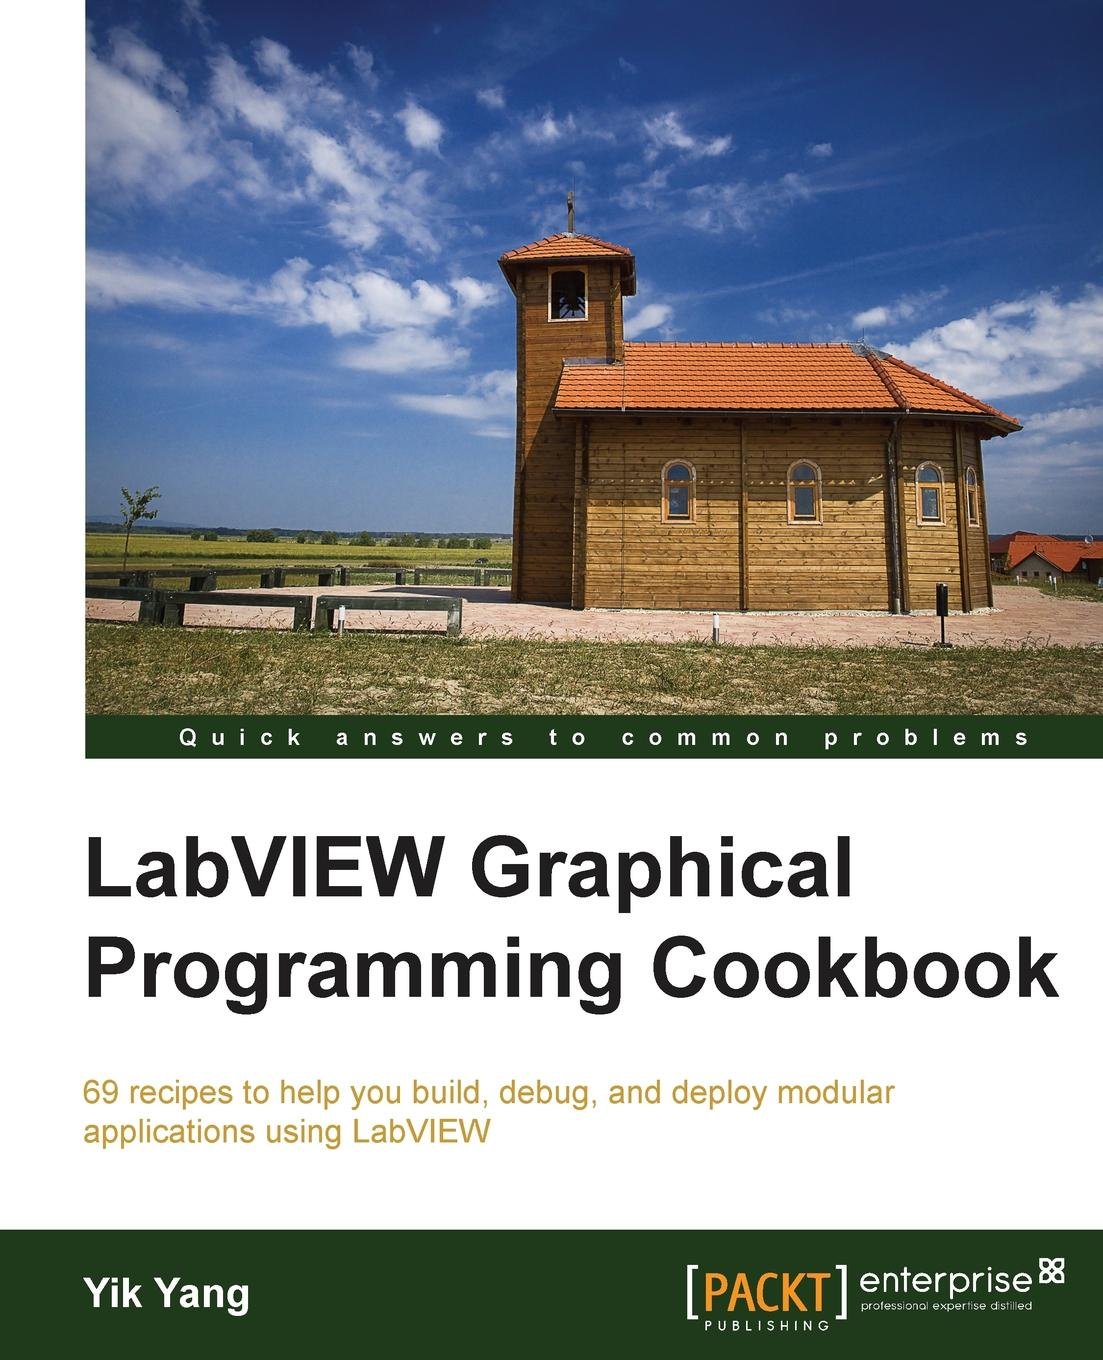 Yik Yang LabVIEW Graphical Programming Cookbook